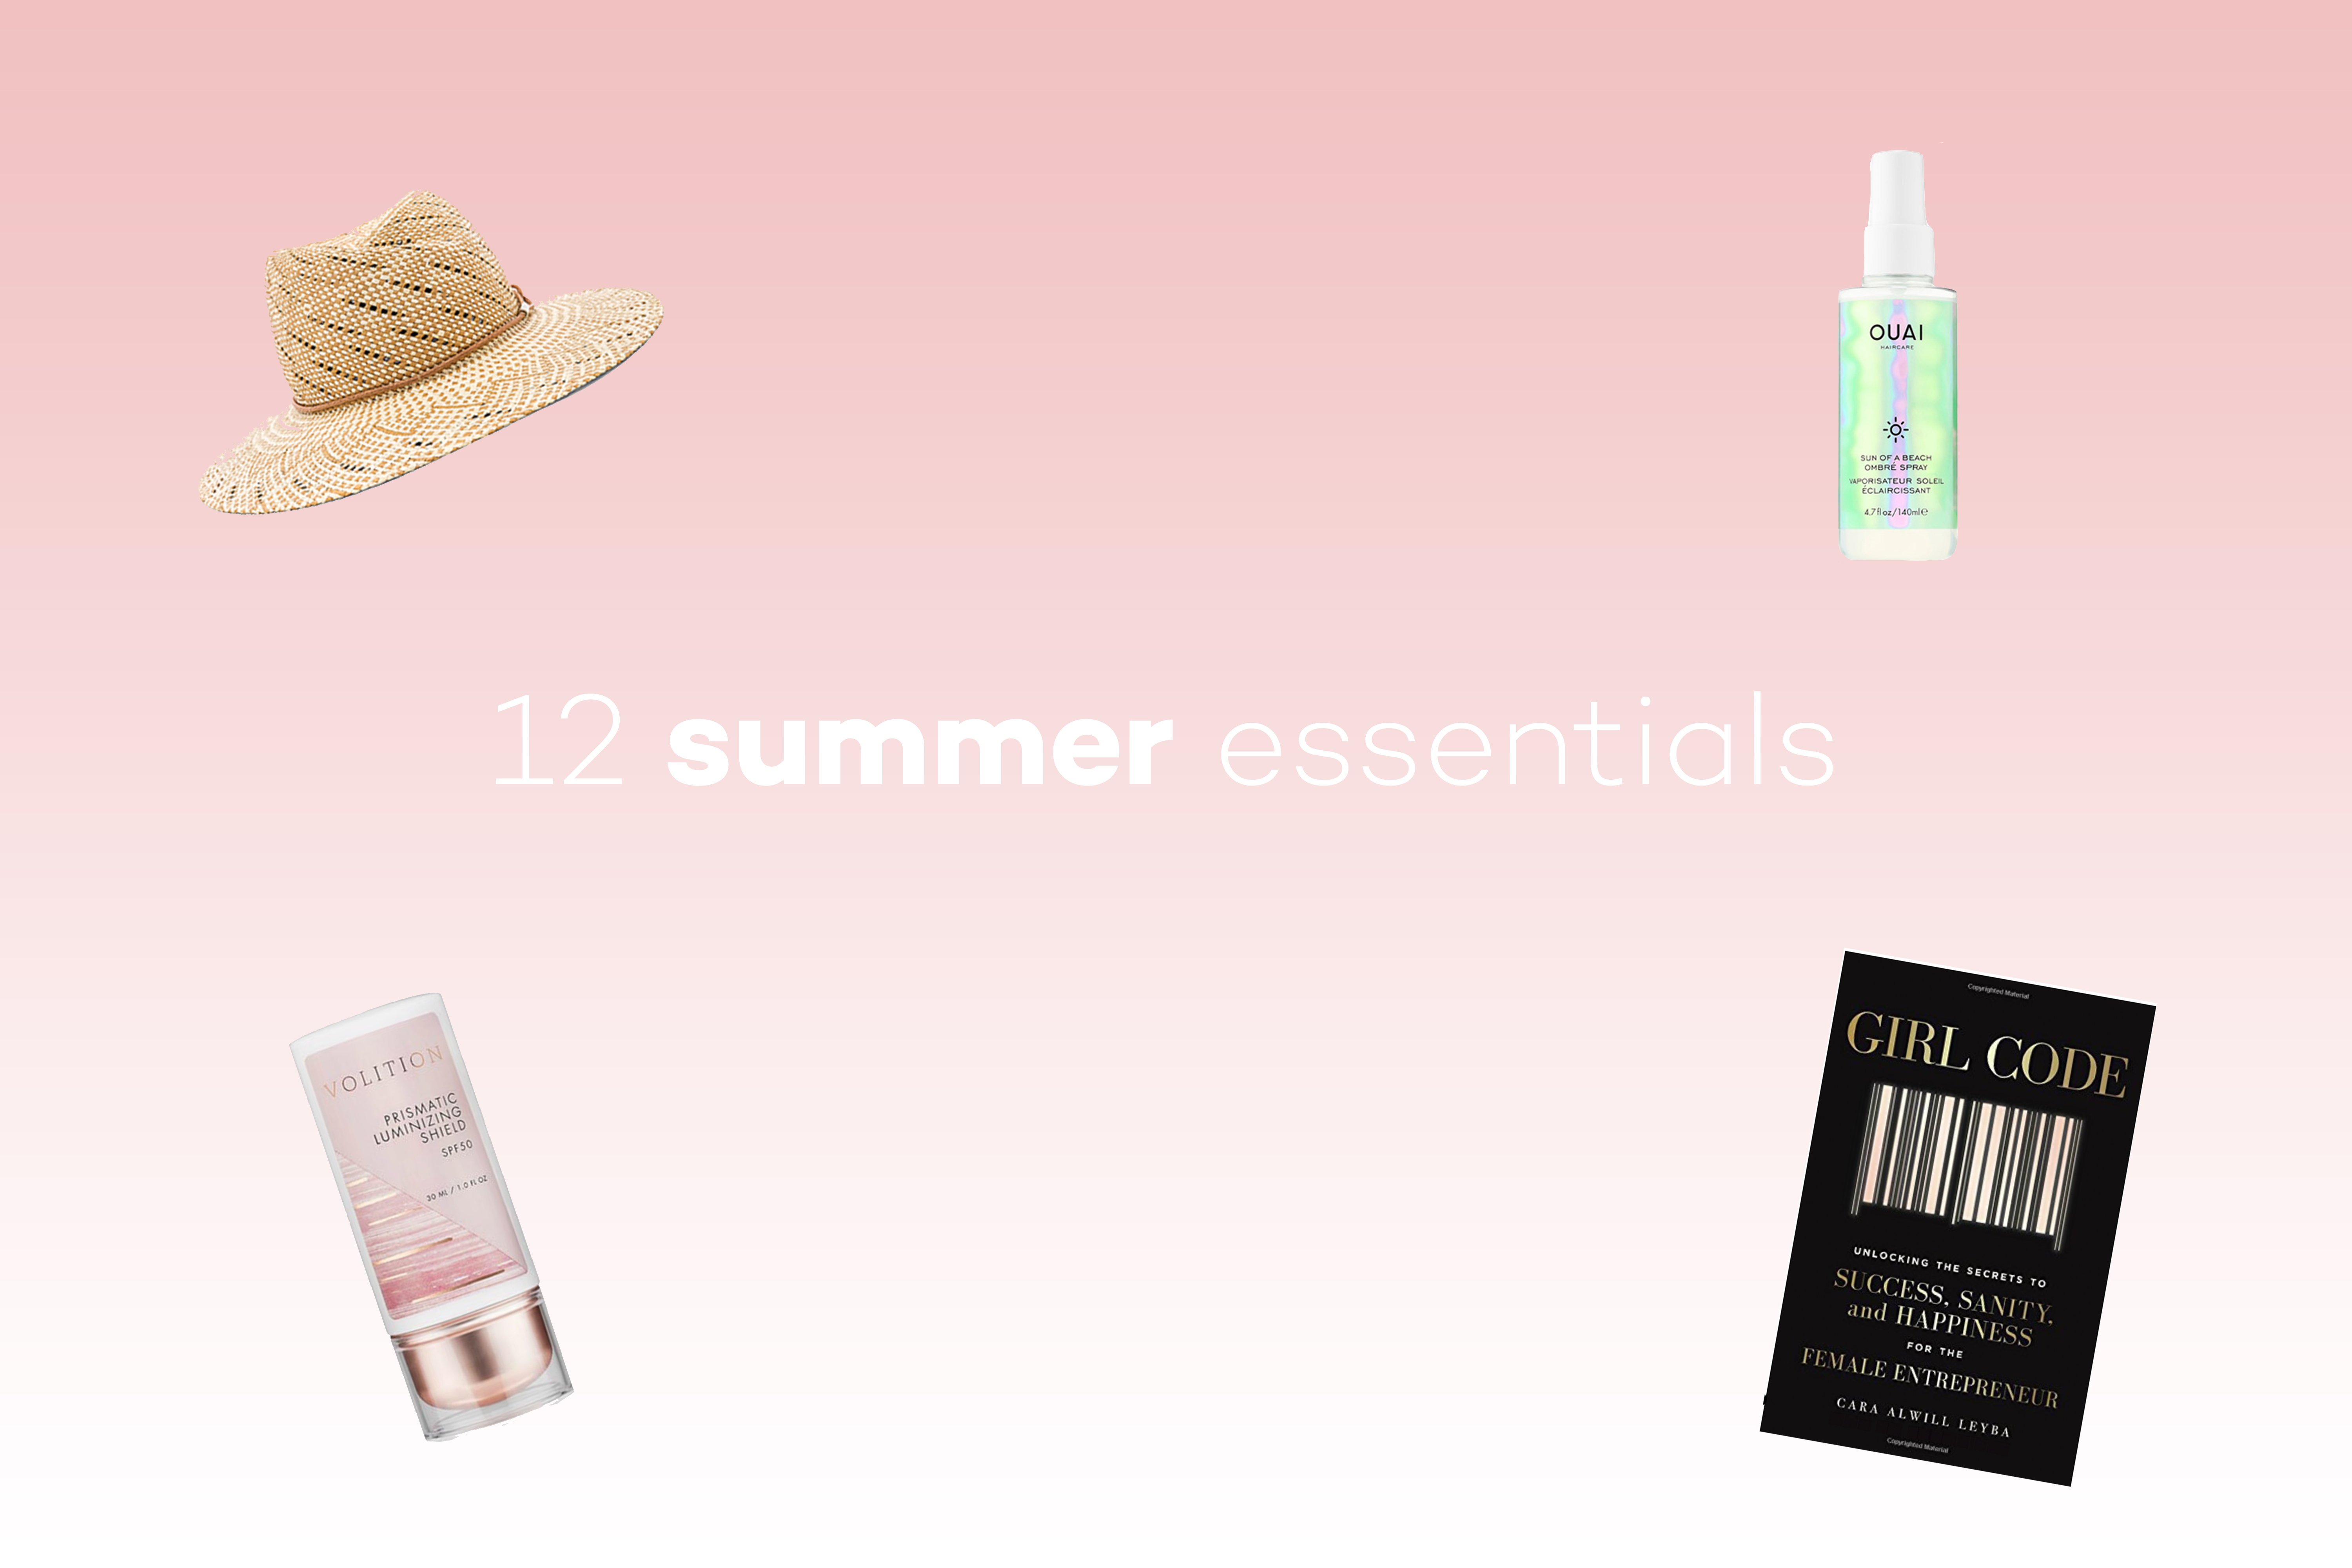 summer_essentials_nastia_liukin_blog